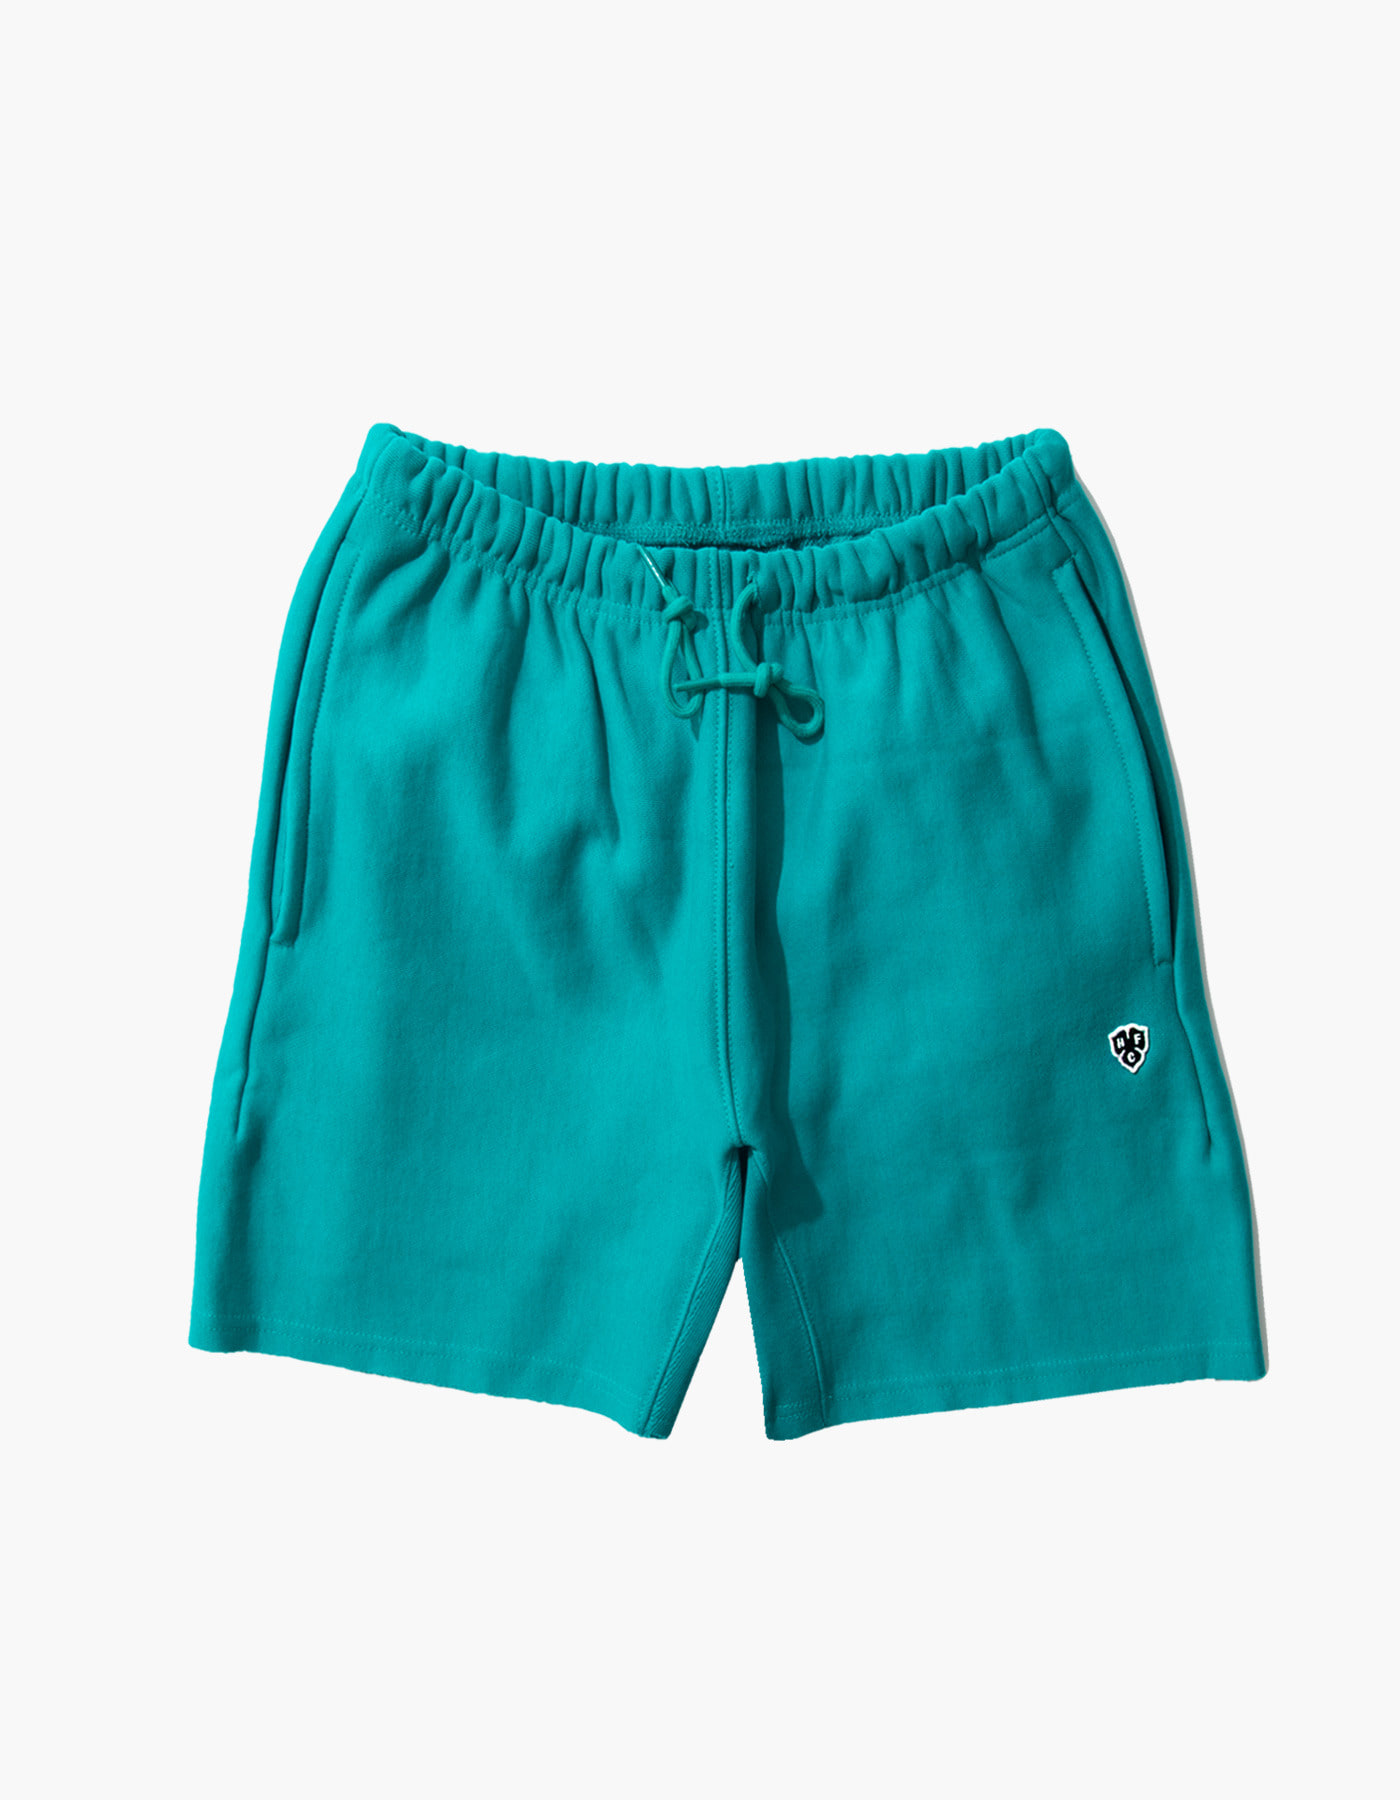 321 GYM SHORTS / BLUE GREEN